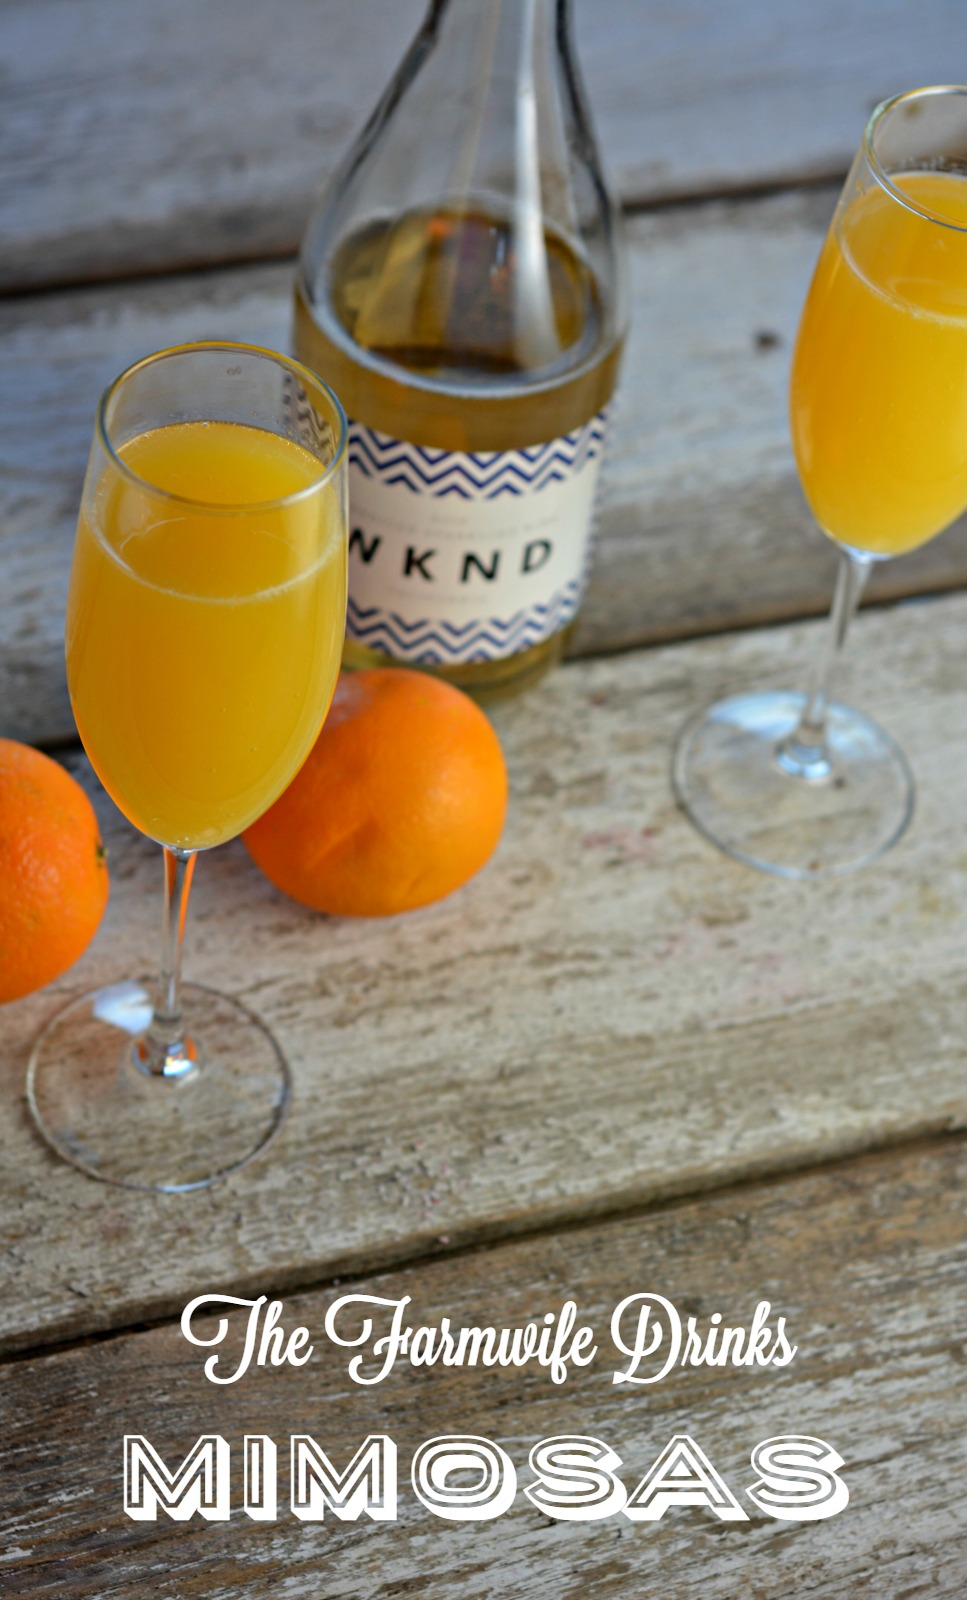 The perfect mimosa is a perfect combination of a citrus forward prosecco style sparkling wine with your favorite orange juice.